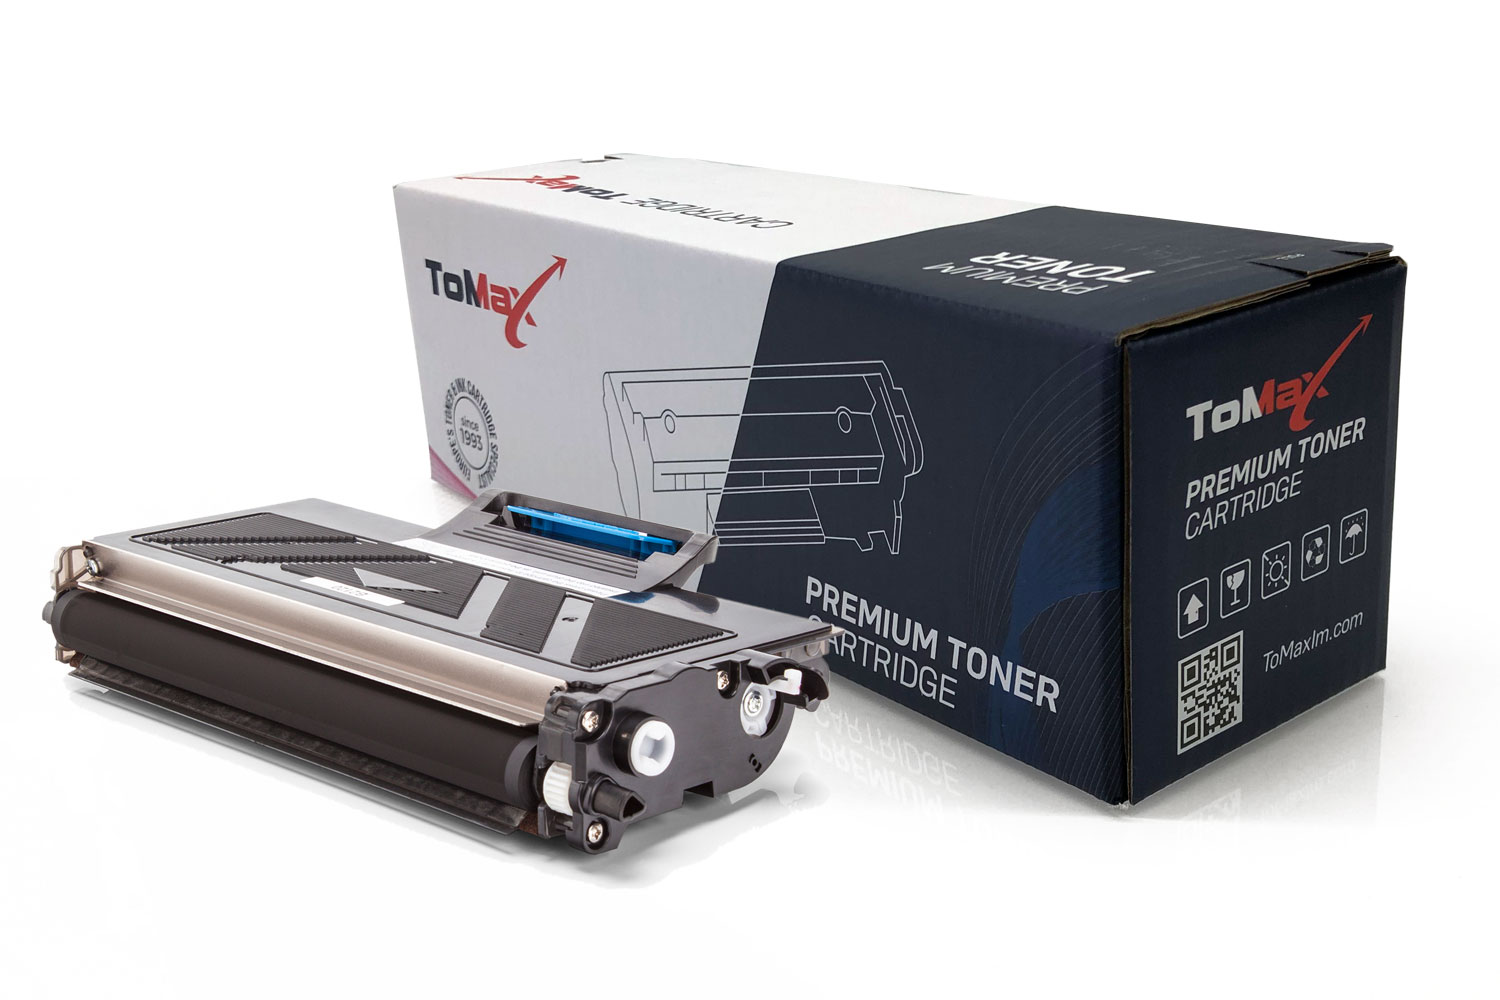 ToMax Premium Toner Cartridge replaces OKI 44469705 / C310 Magenta